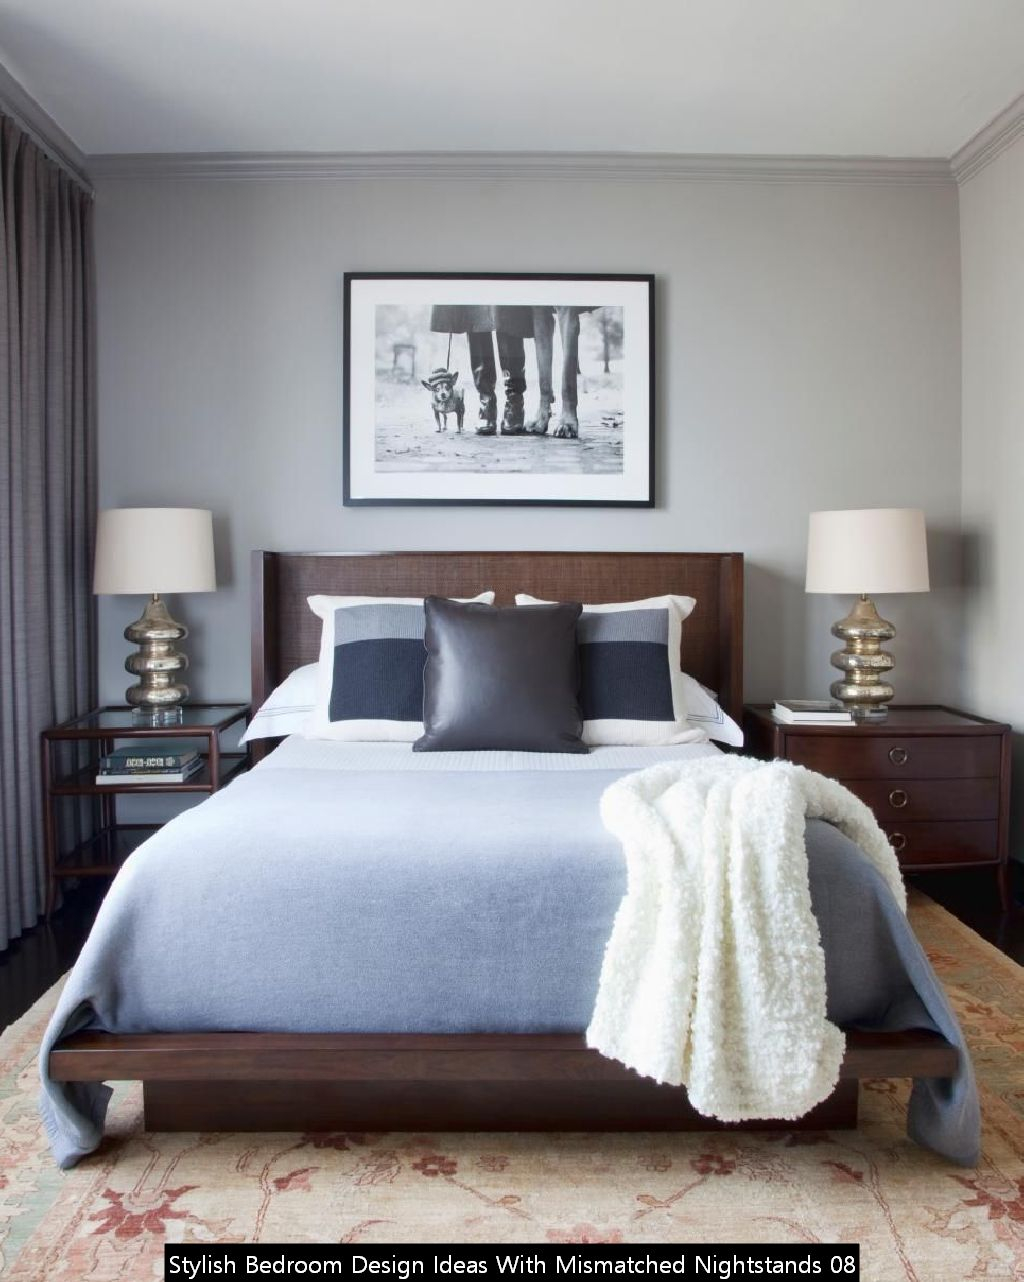 Stylish Bedroom Design Ideas With Mismatched Nightstands 08